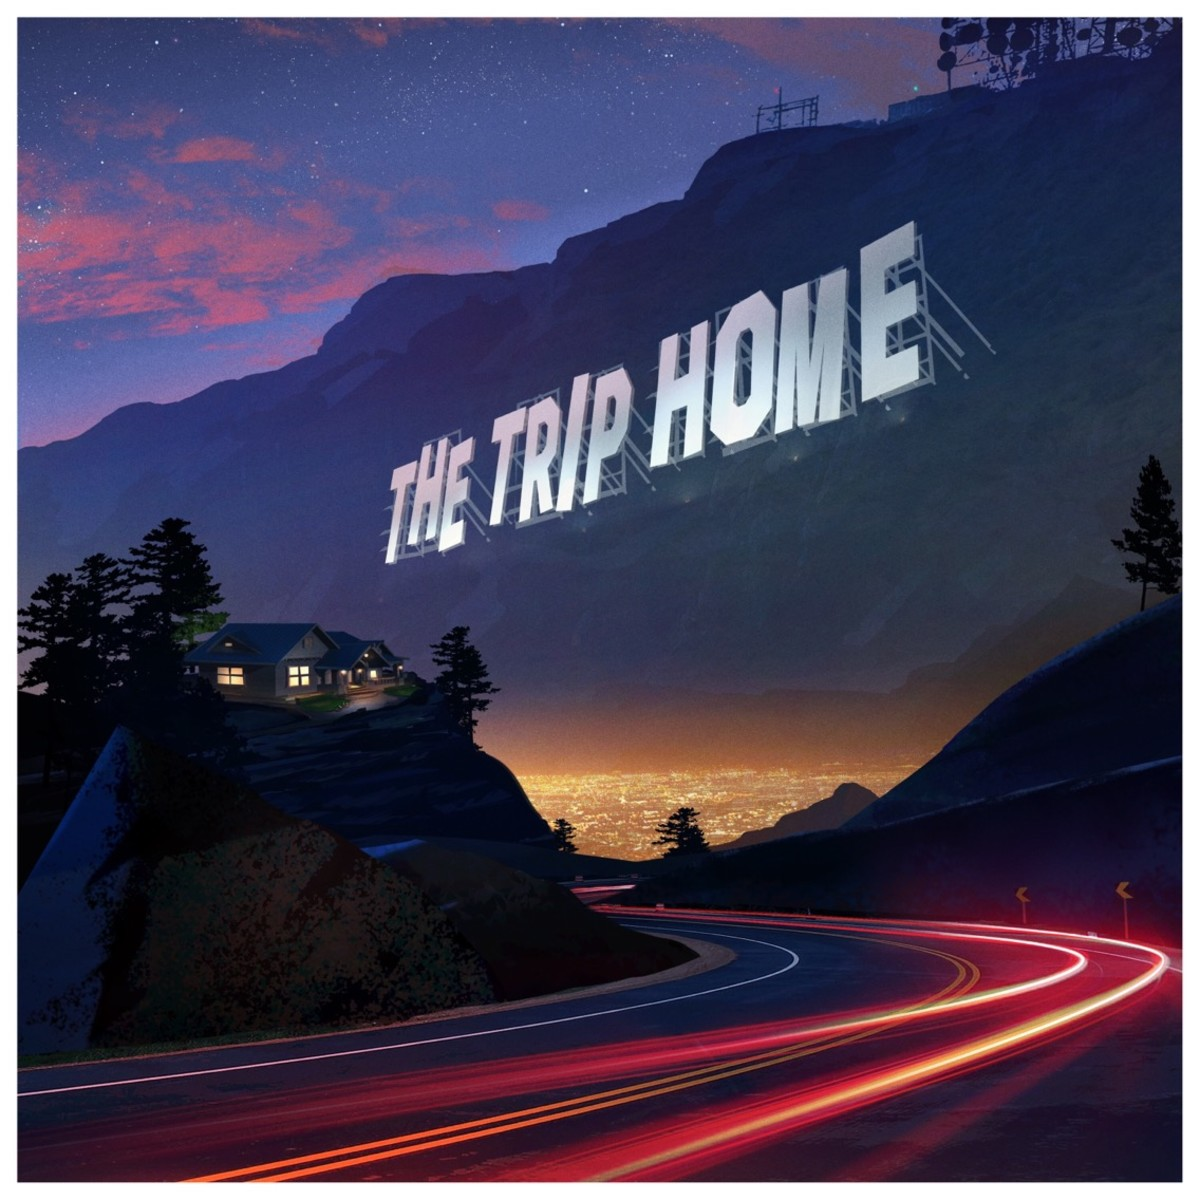 The Crystal Method - The Trip Home Album Art.  Courtesy: The Crystal Method.